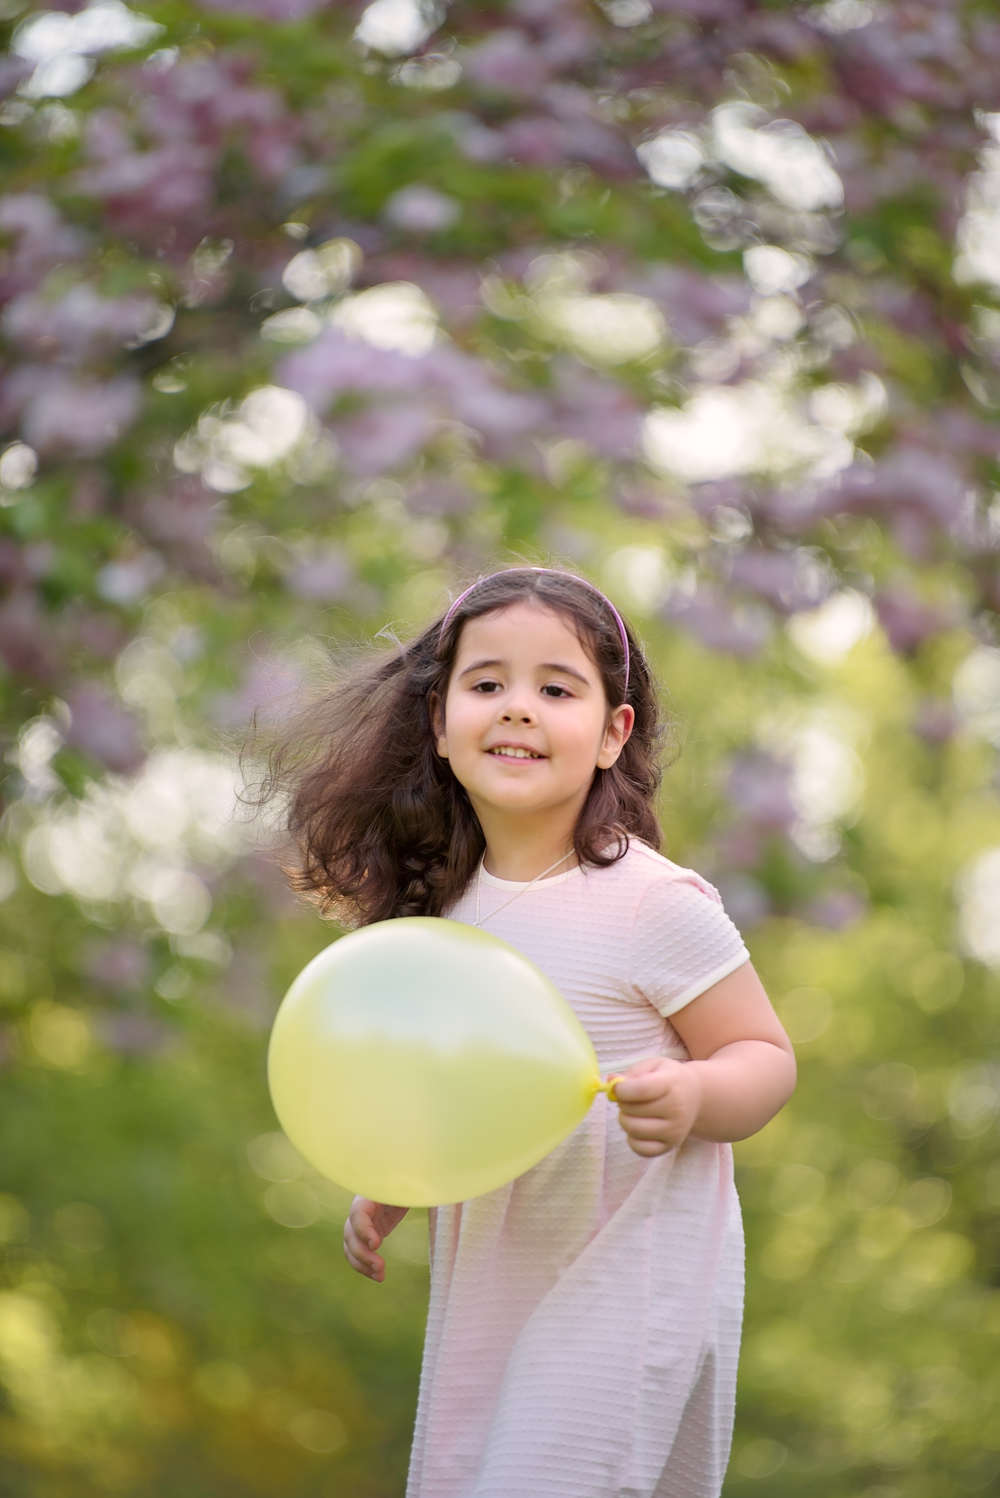 Girl photographed with balloon in pink cherry blossoms, Kensington Gardens